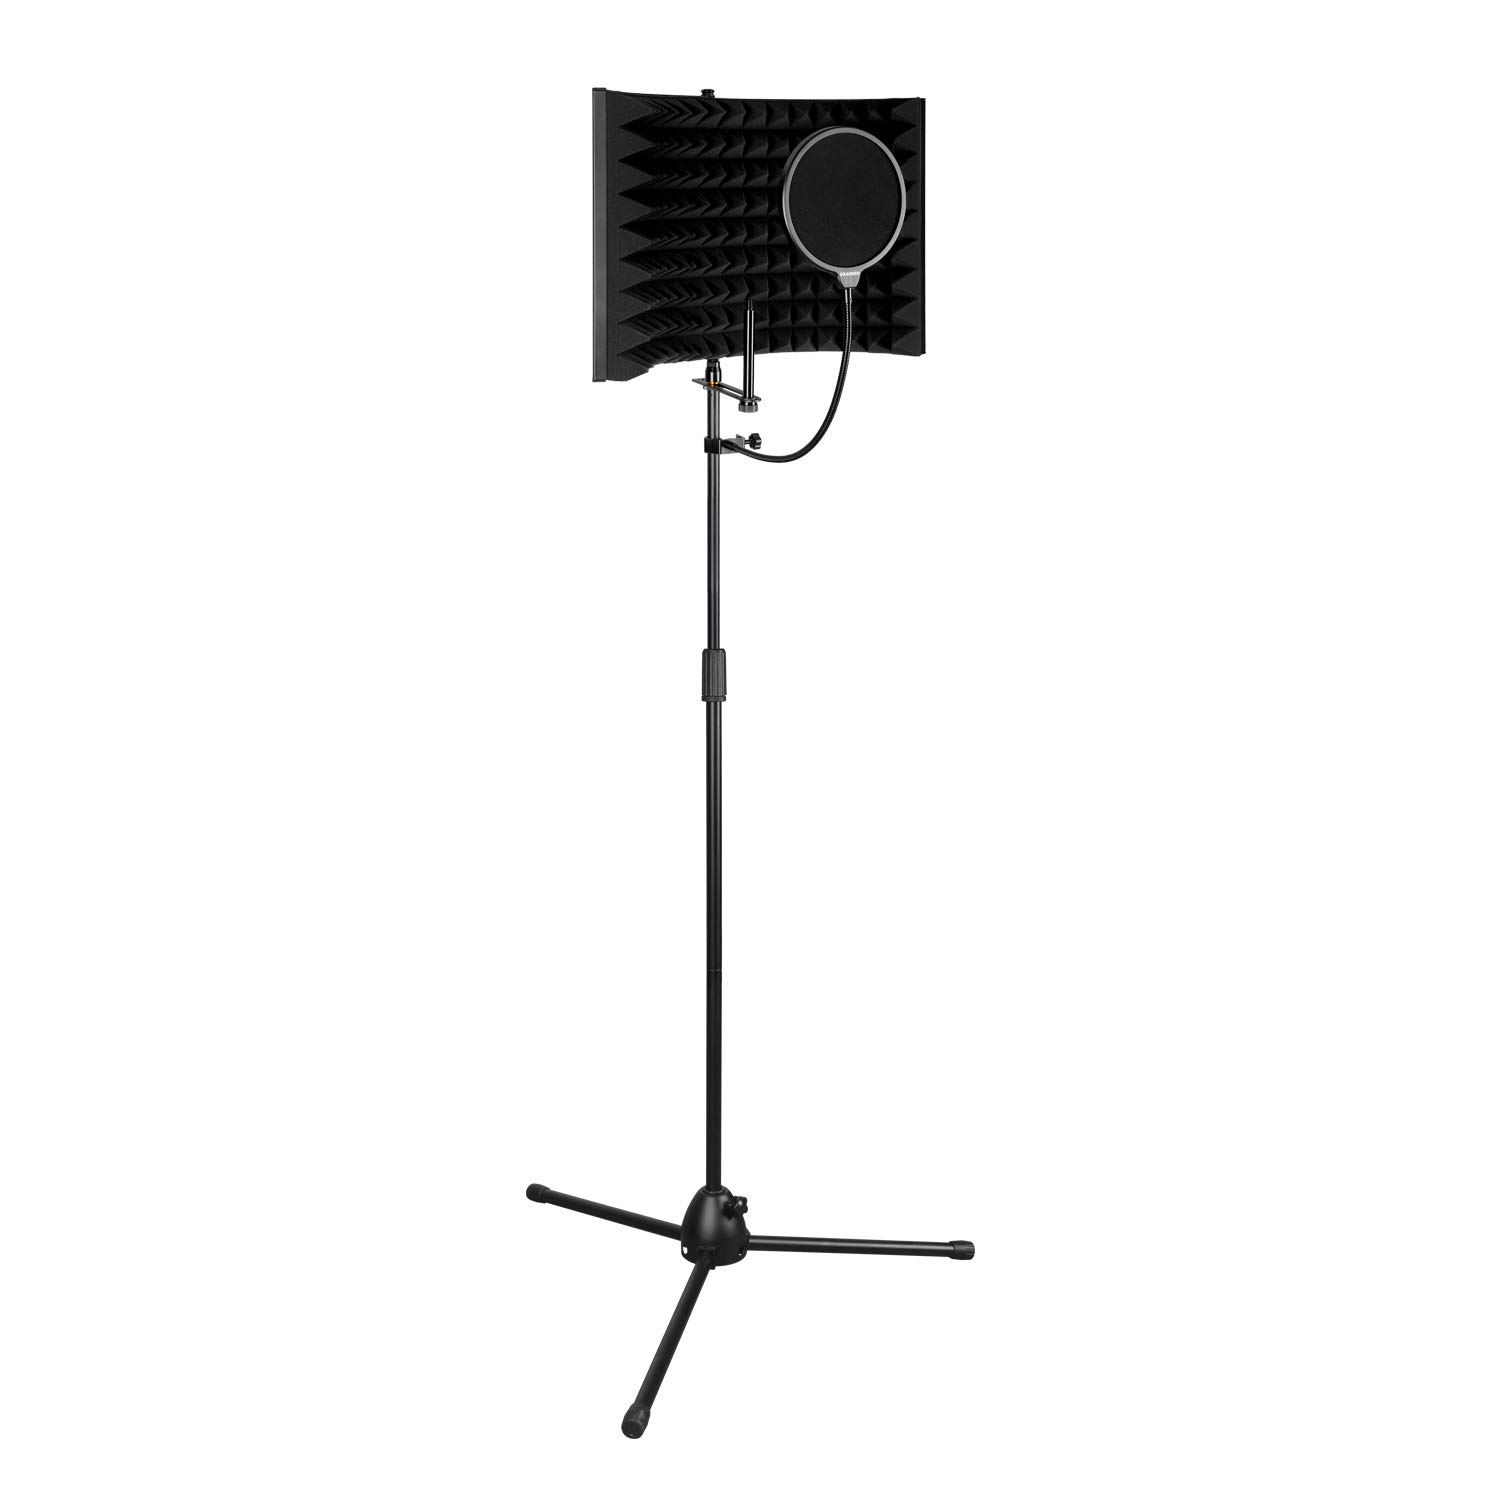 Aokeo Premium Microphone Isolation Shield, Foldable Adjustable Studio Recording Microphone Isolator Panel, Constructed with Industrial Quality Aluminum, With AK-107 Tripod Stand And Premium Pop Filter